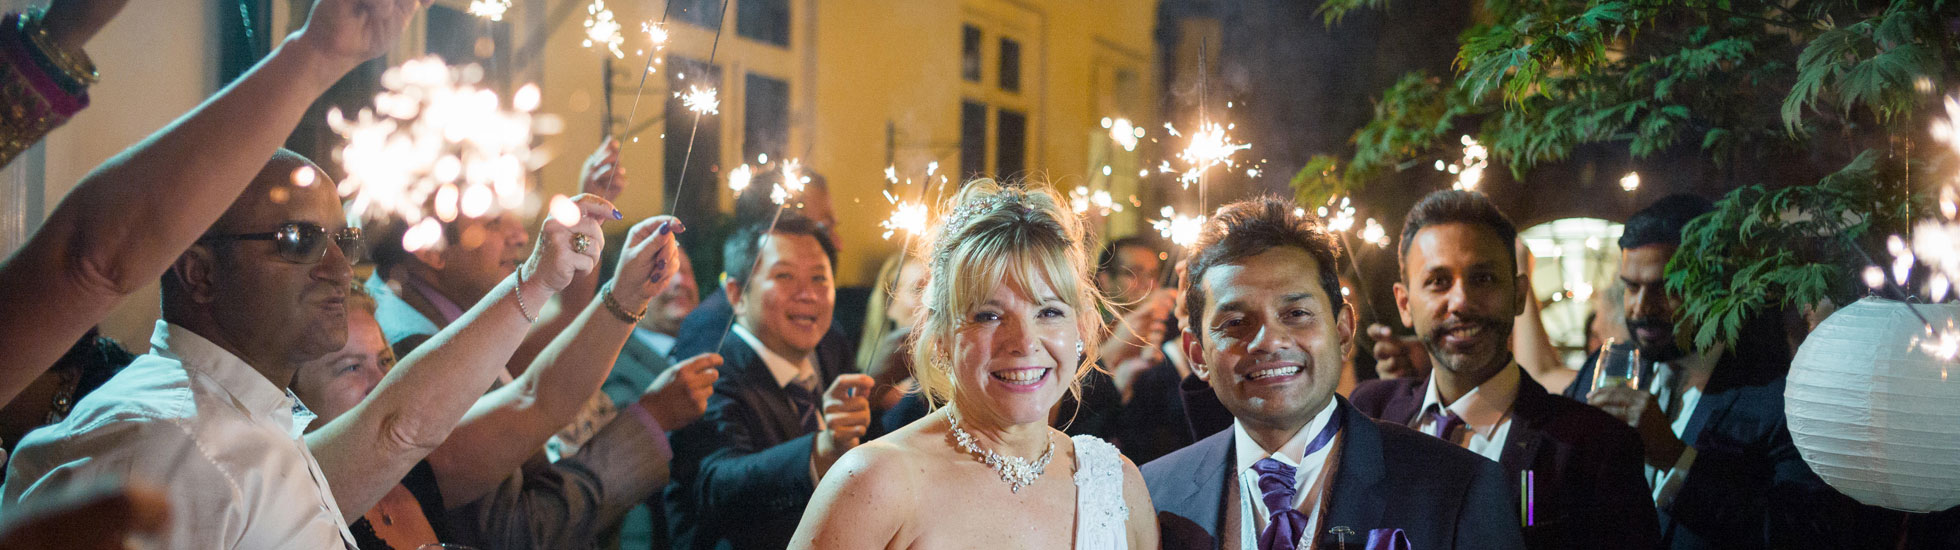 Wedding Sparkler Fun at Stationers Hall, London / Photo: Douglas Fry Photography